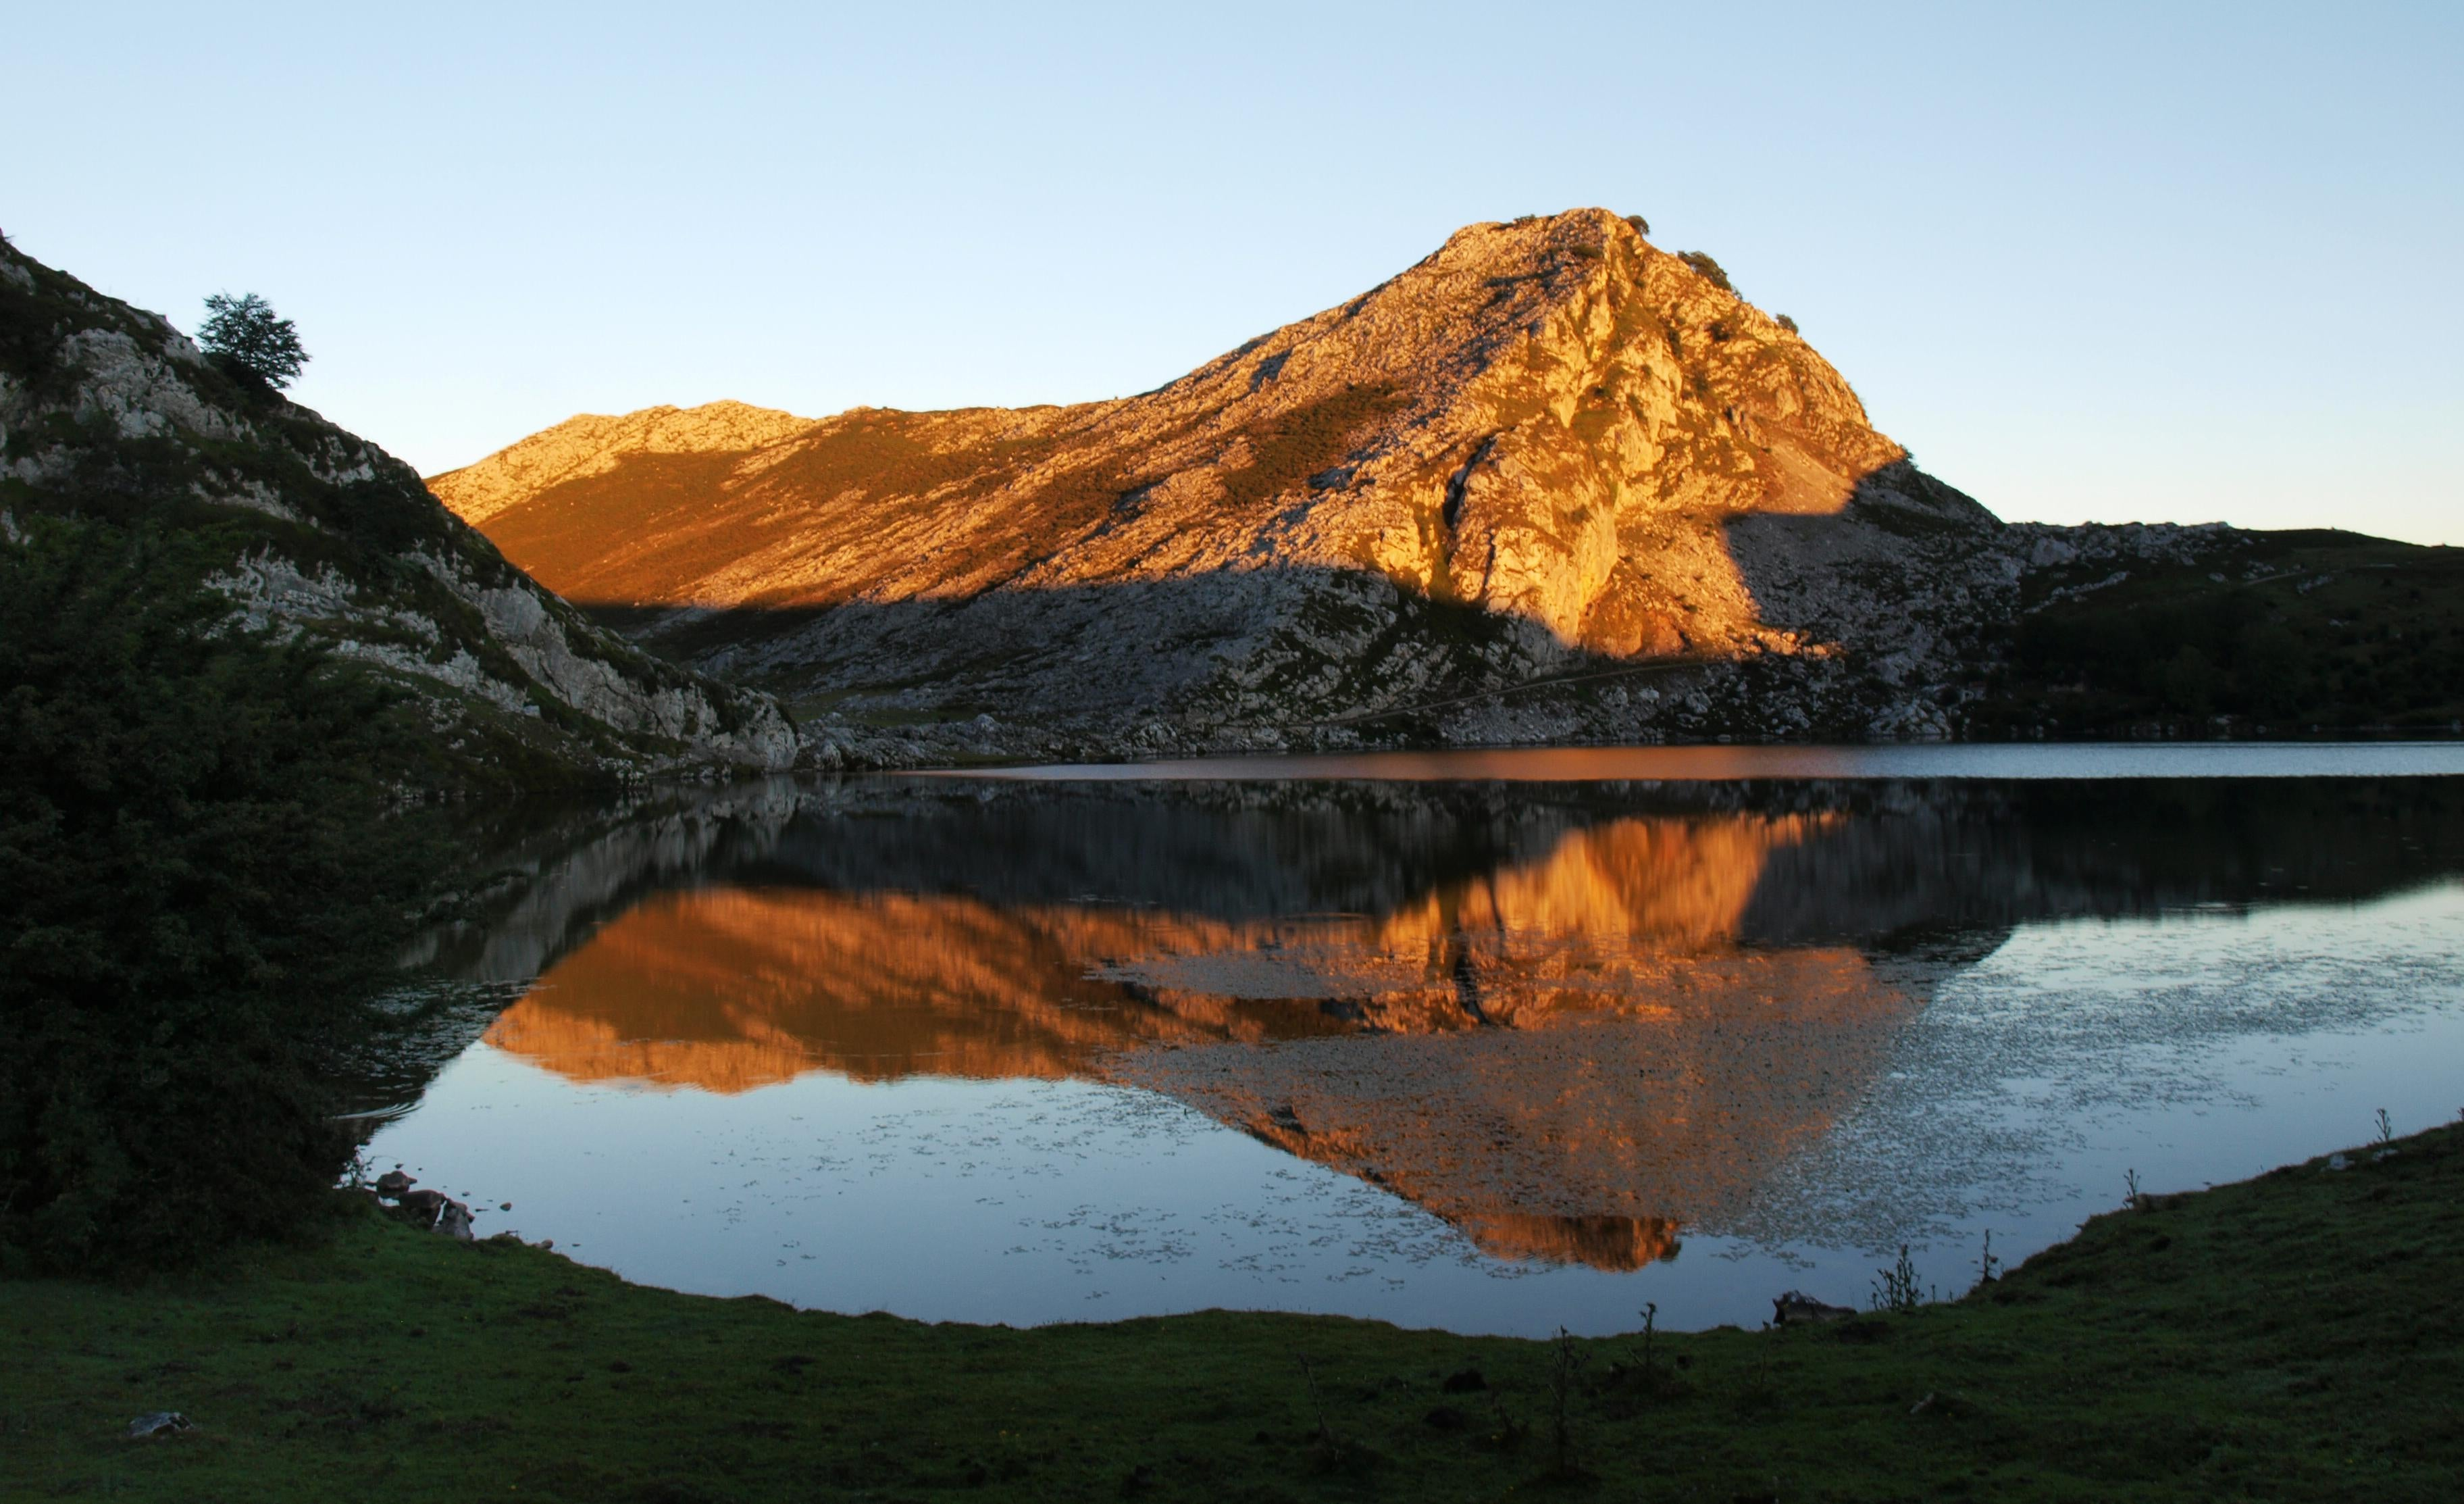 Badlands in The Lakes of Covadonga - Enol and Ercina lakes